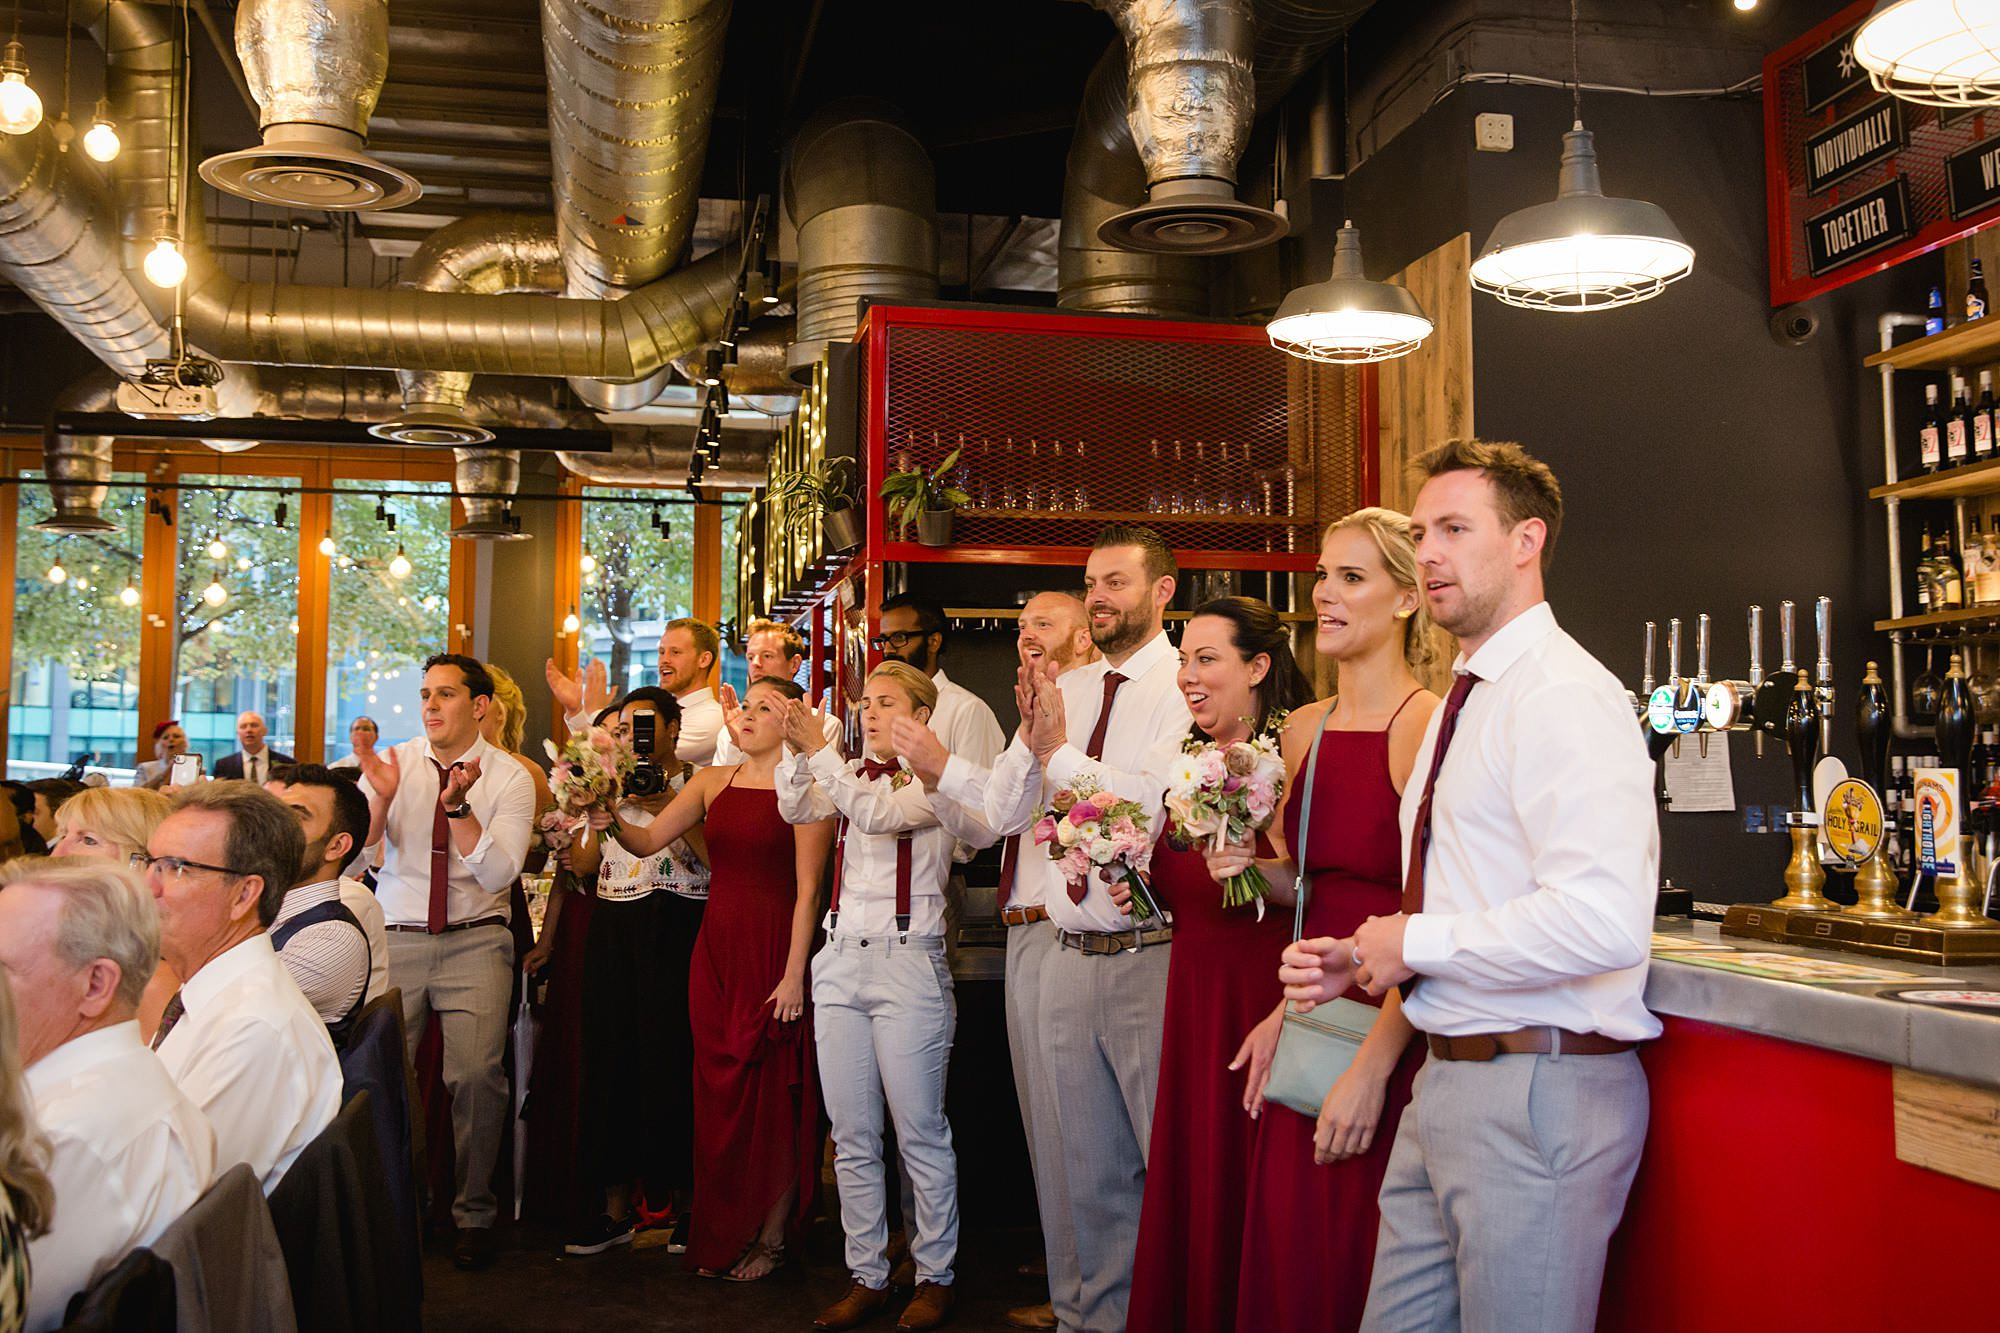 The Union Paddington wedding party cheer for bride and groom